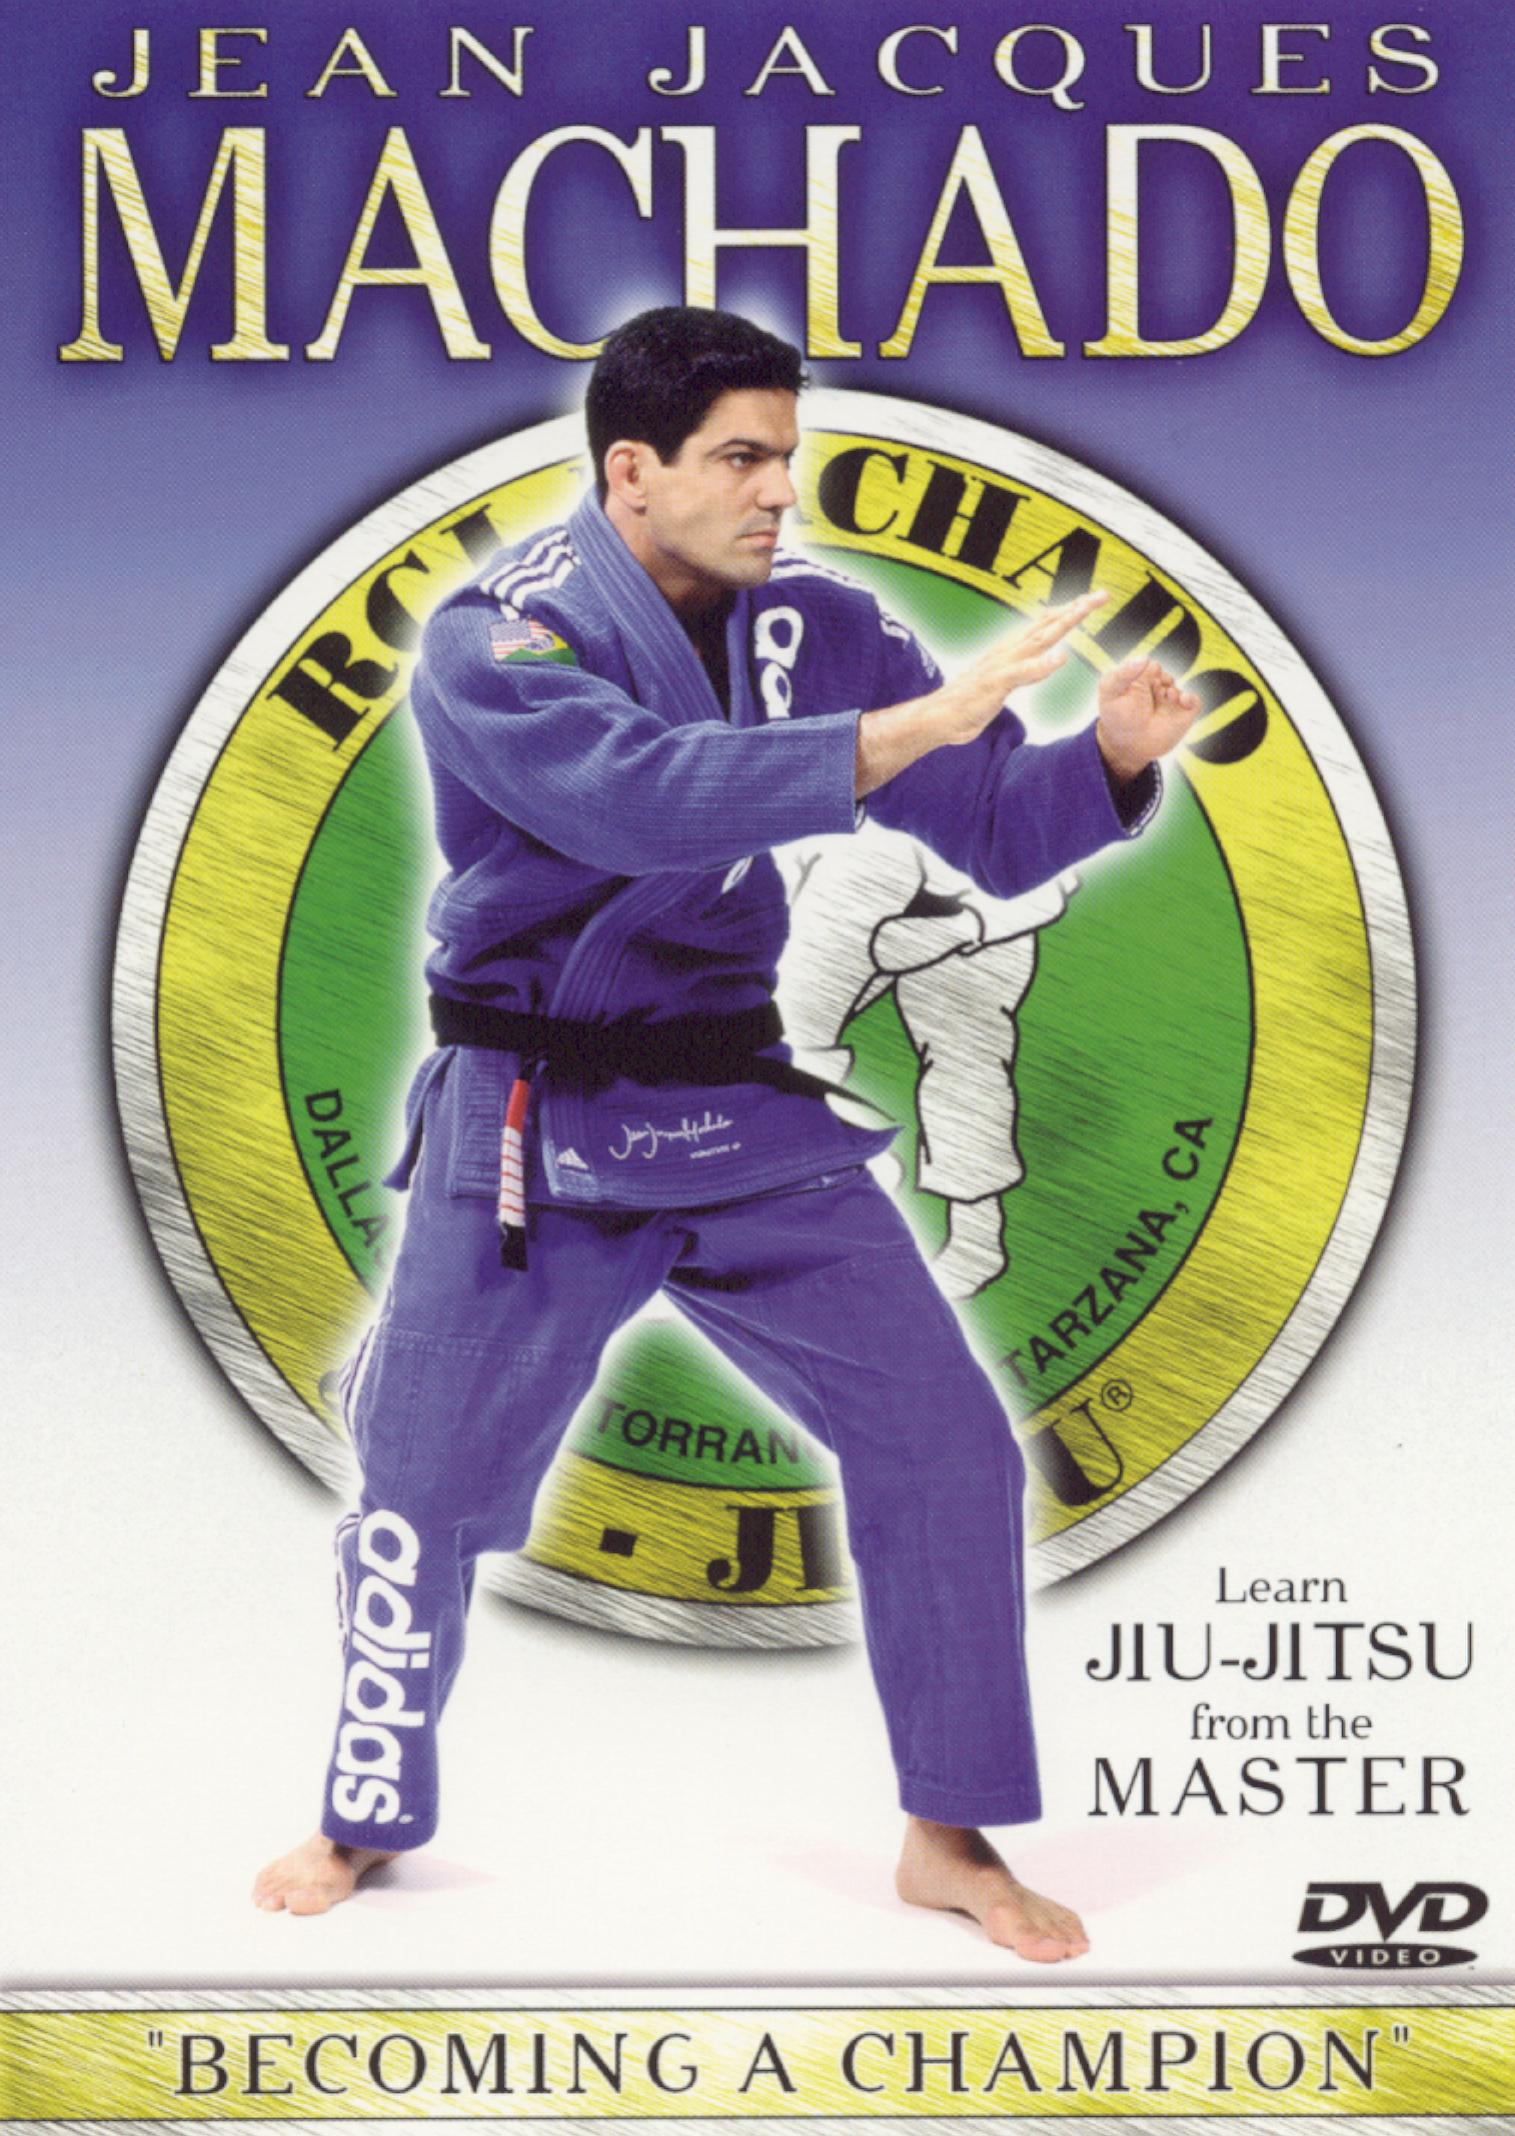 Jean Jacques Machado: Becoming a Champion